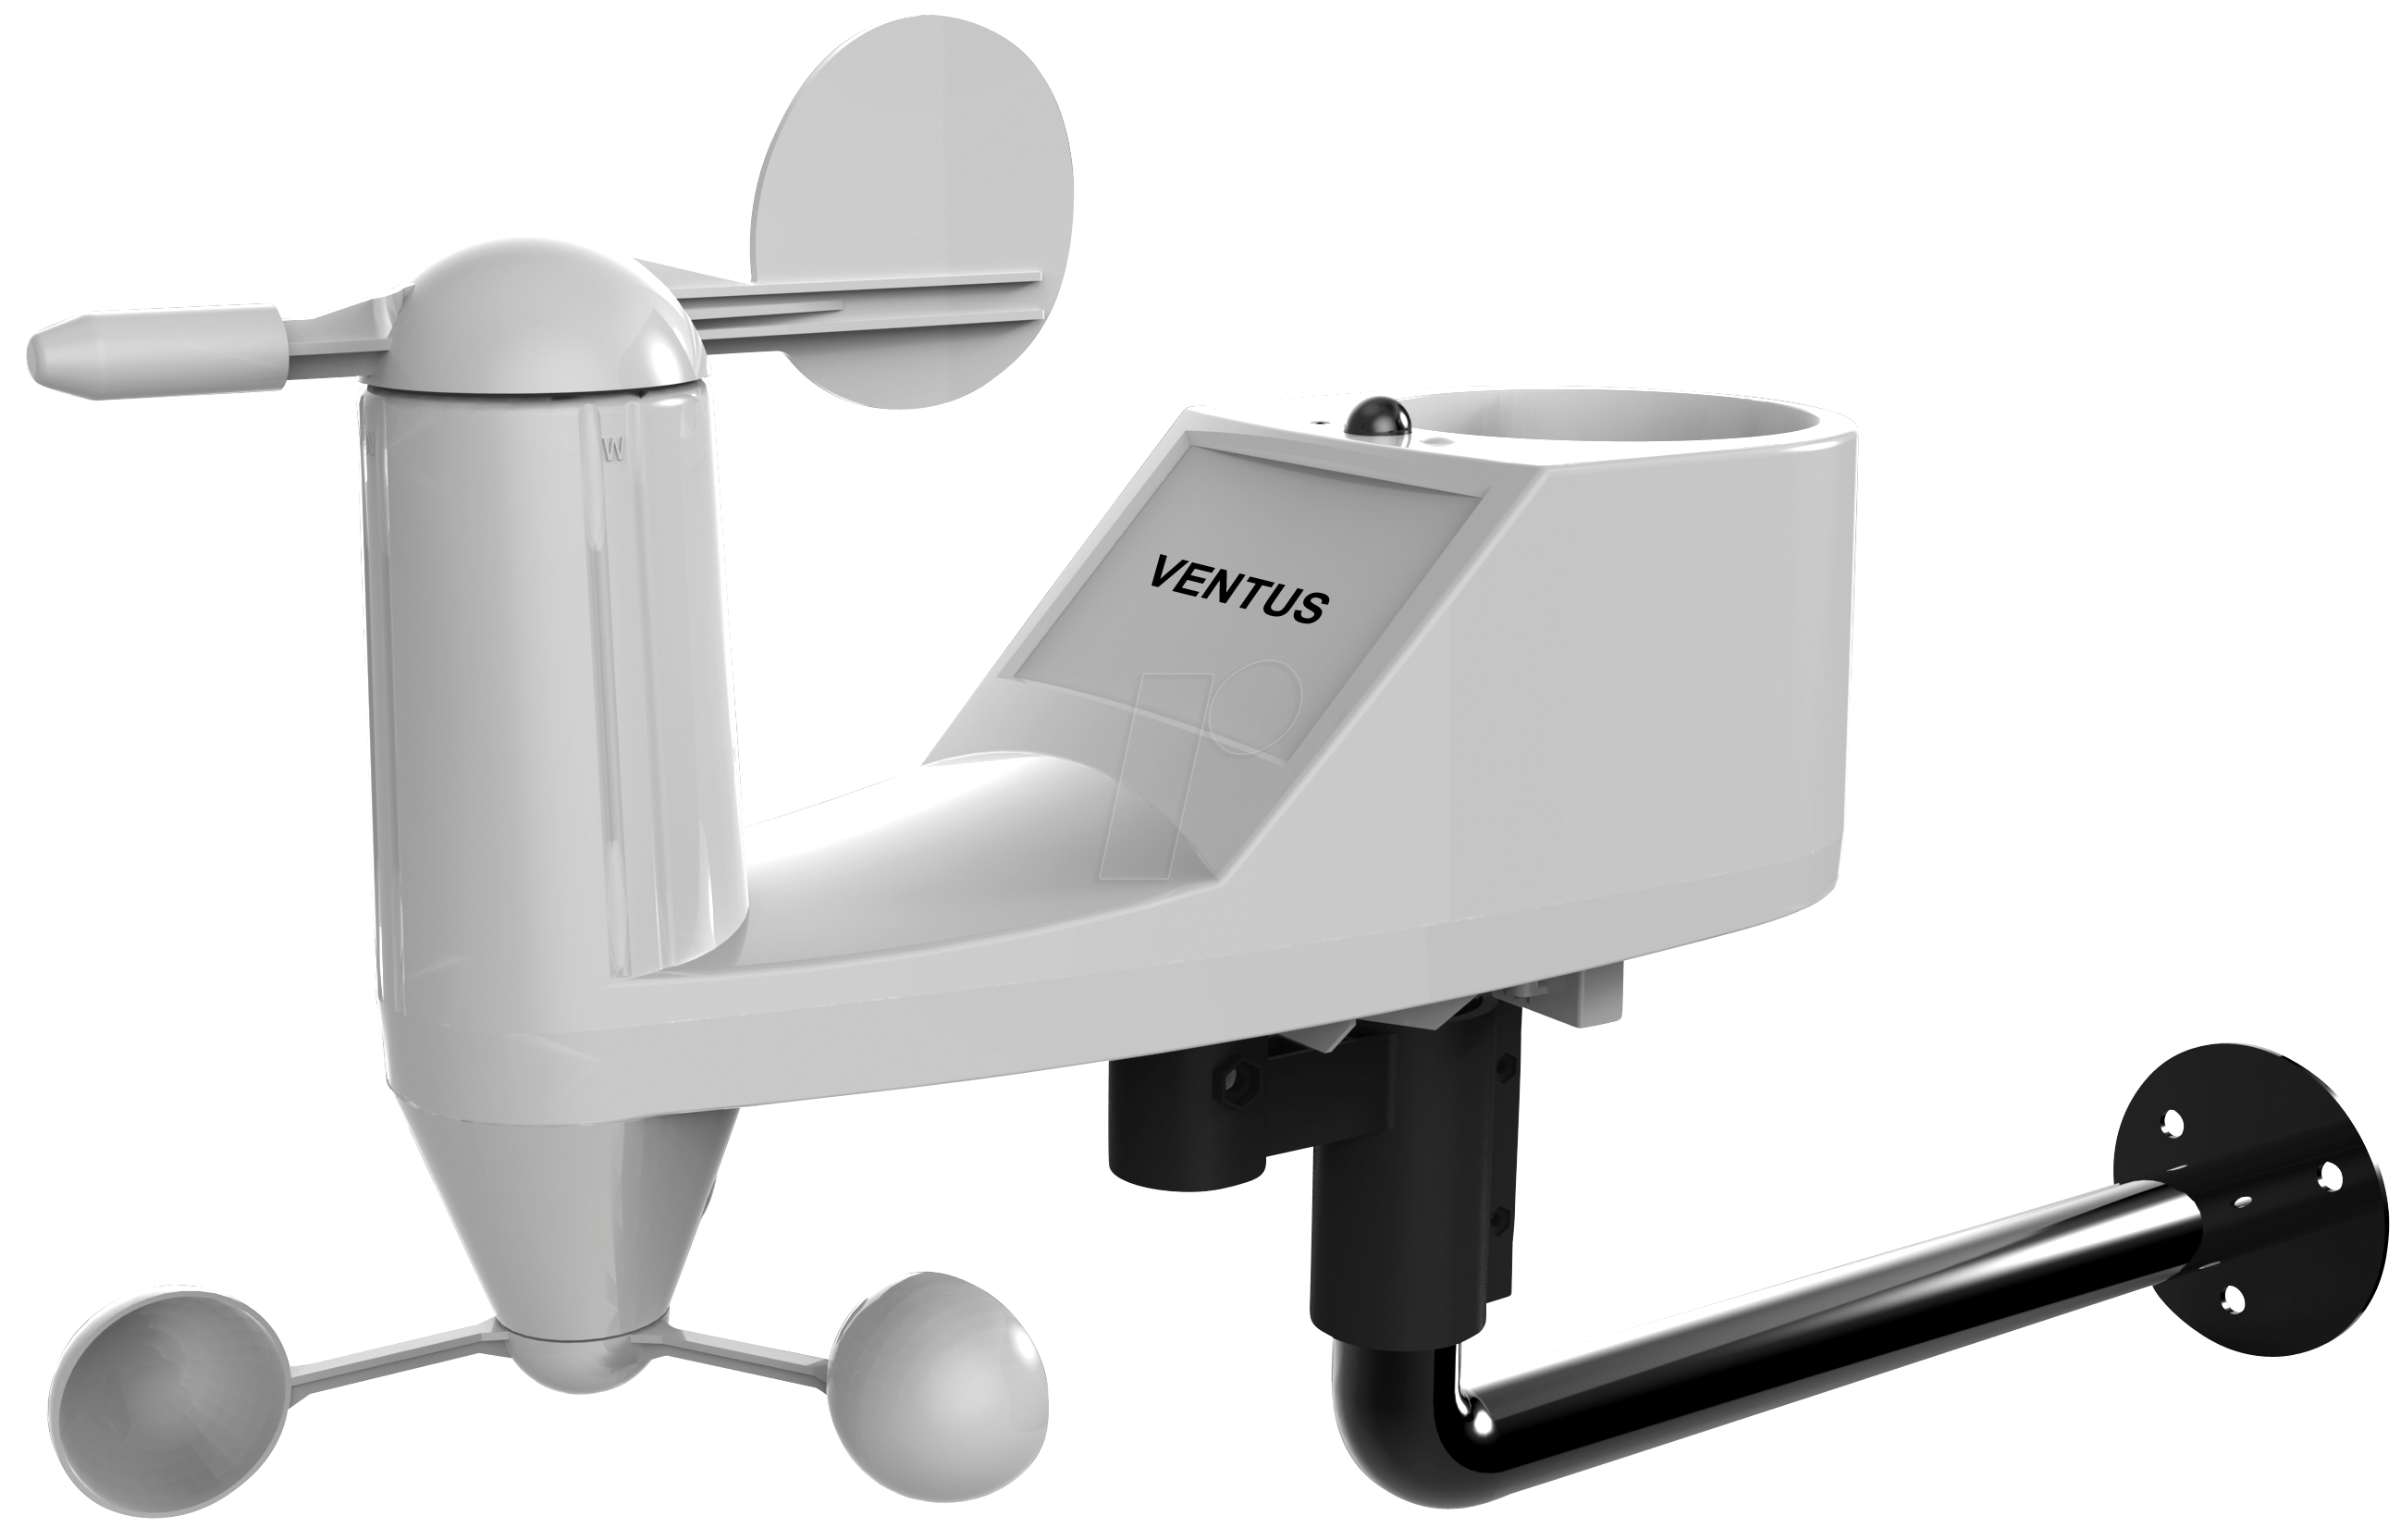 ventus w820 professional bluetooth weather station at. Black Bedroom Furniture Sets. Home Design Ideas